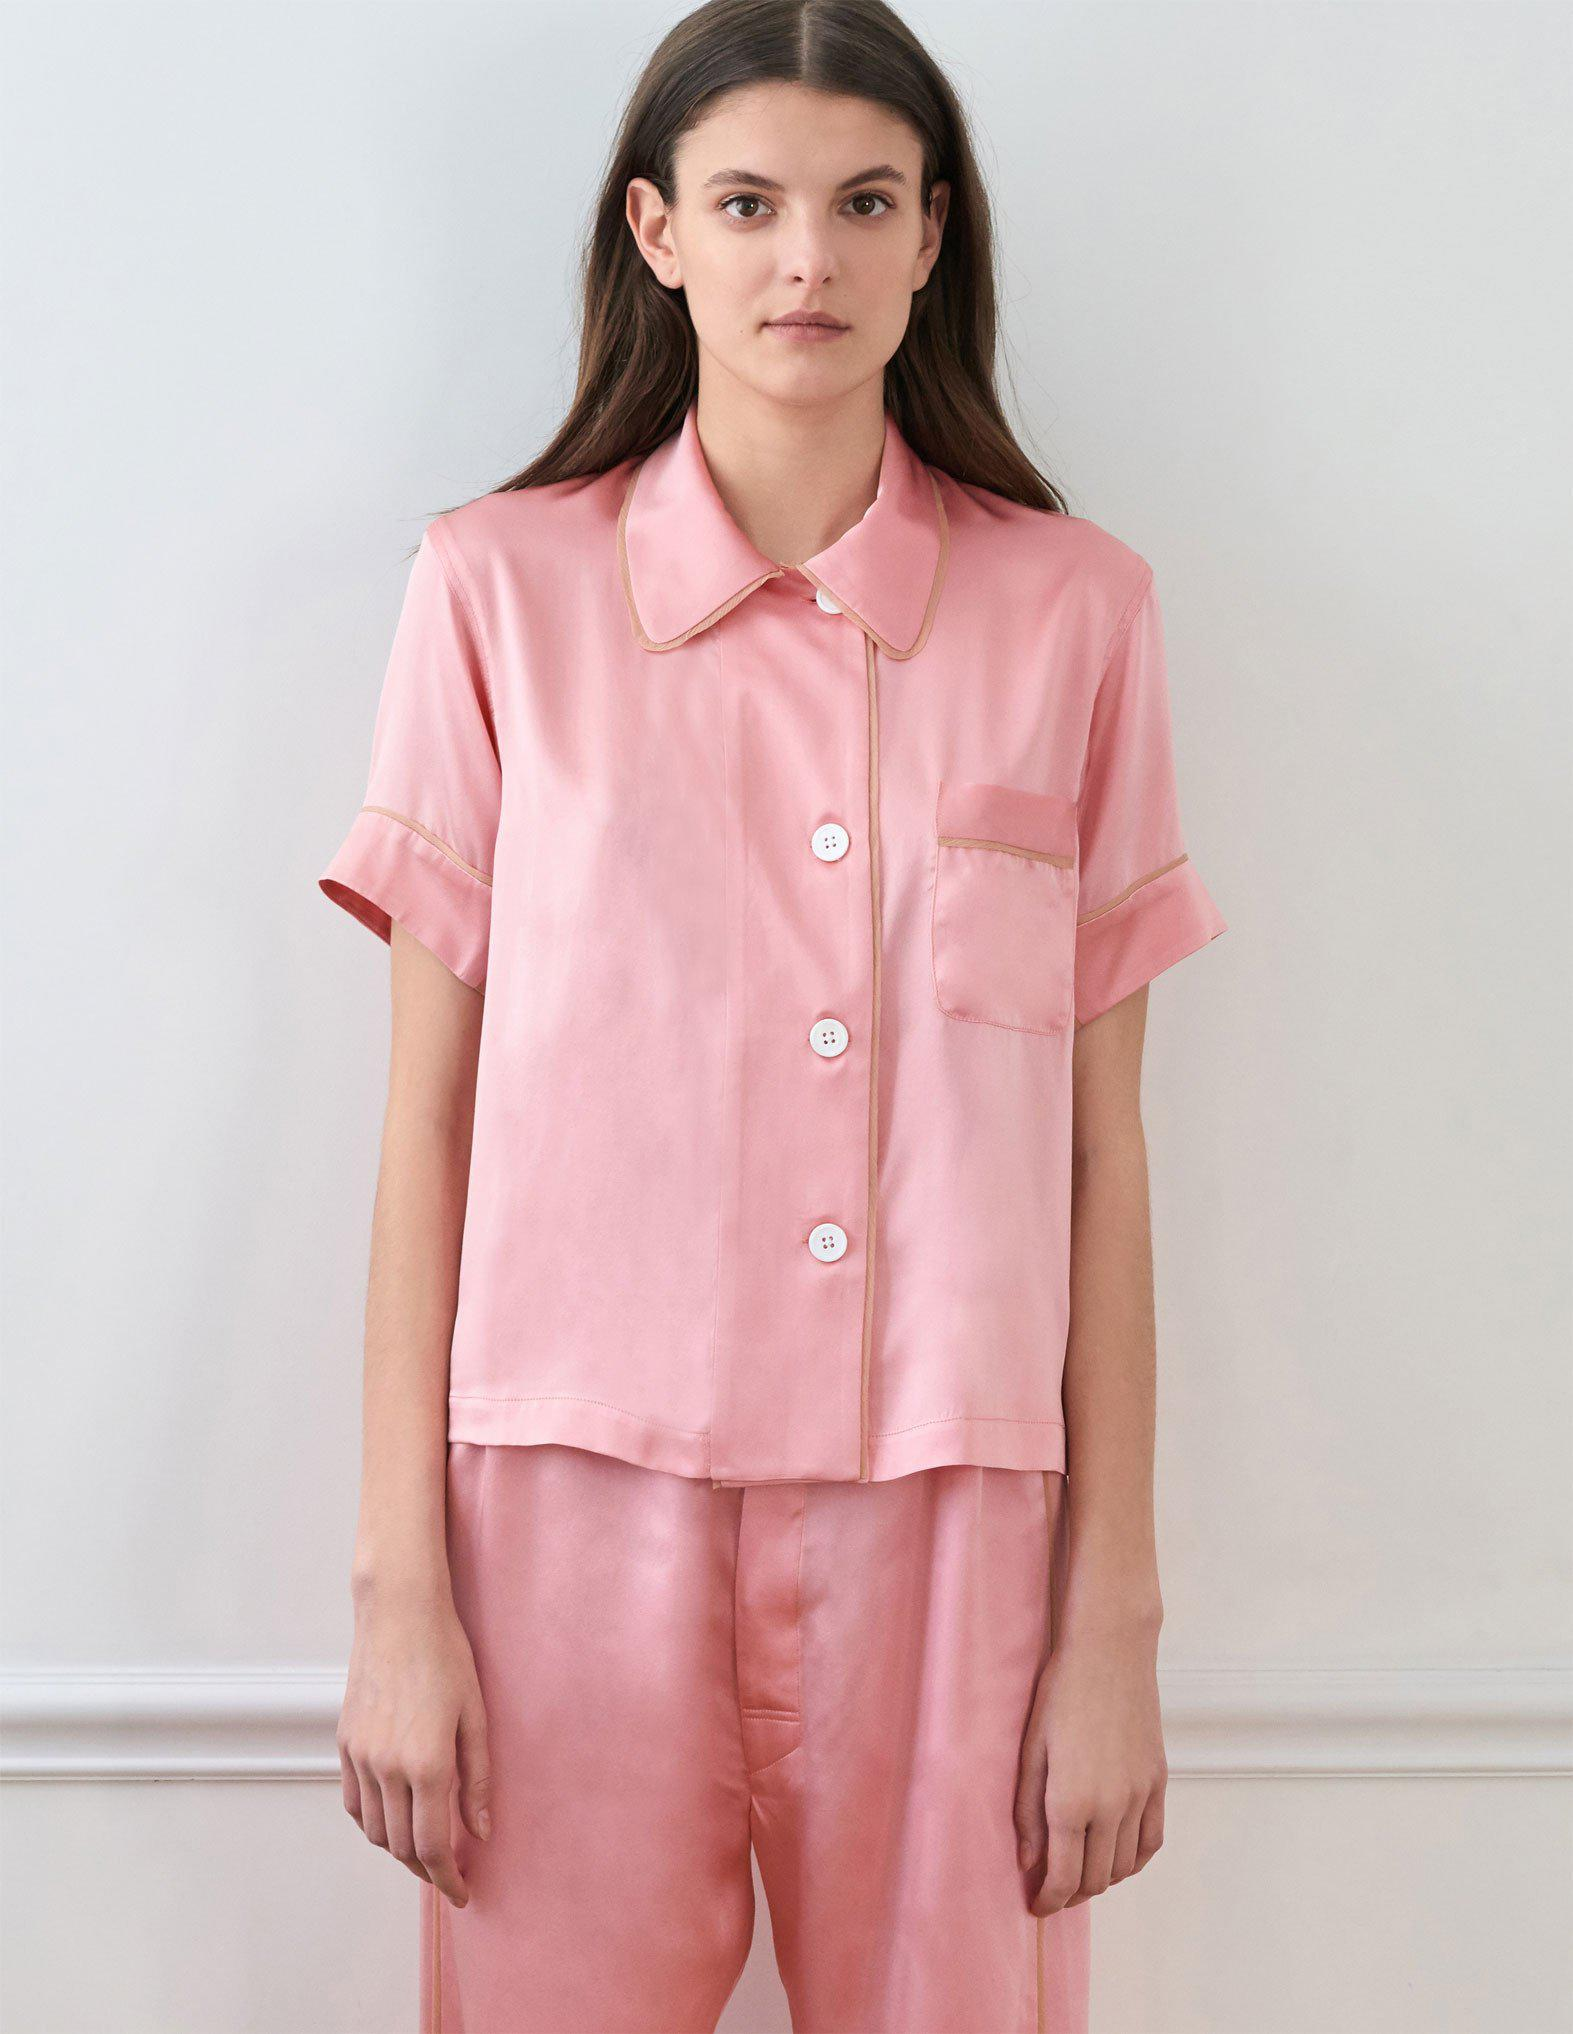 Lyst - Araks Shelby Pajama Top Dahlia in Pink 119e30a56